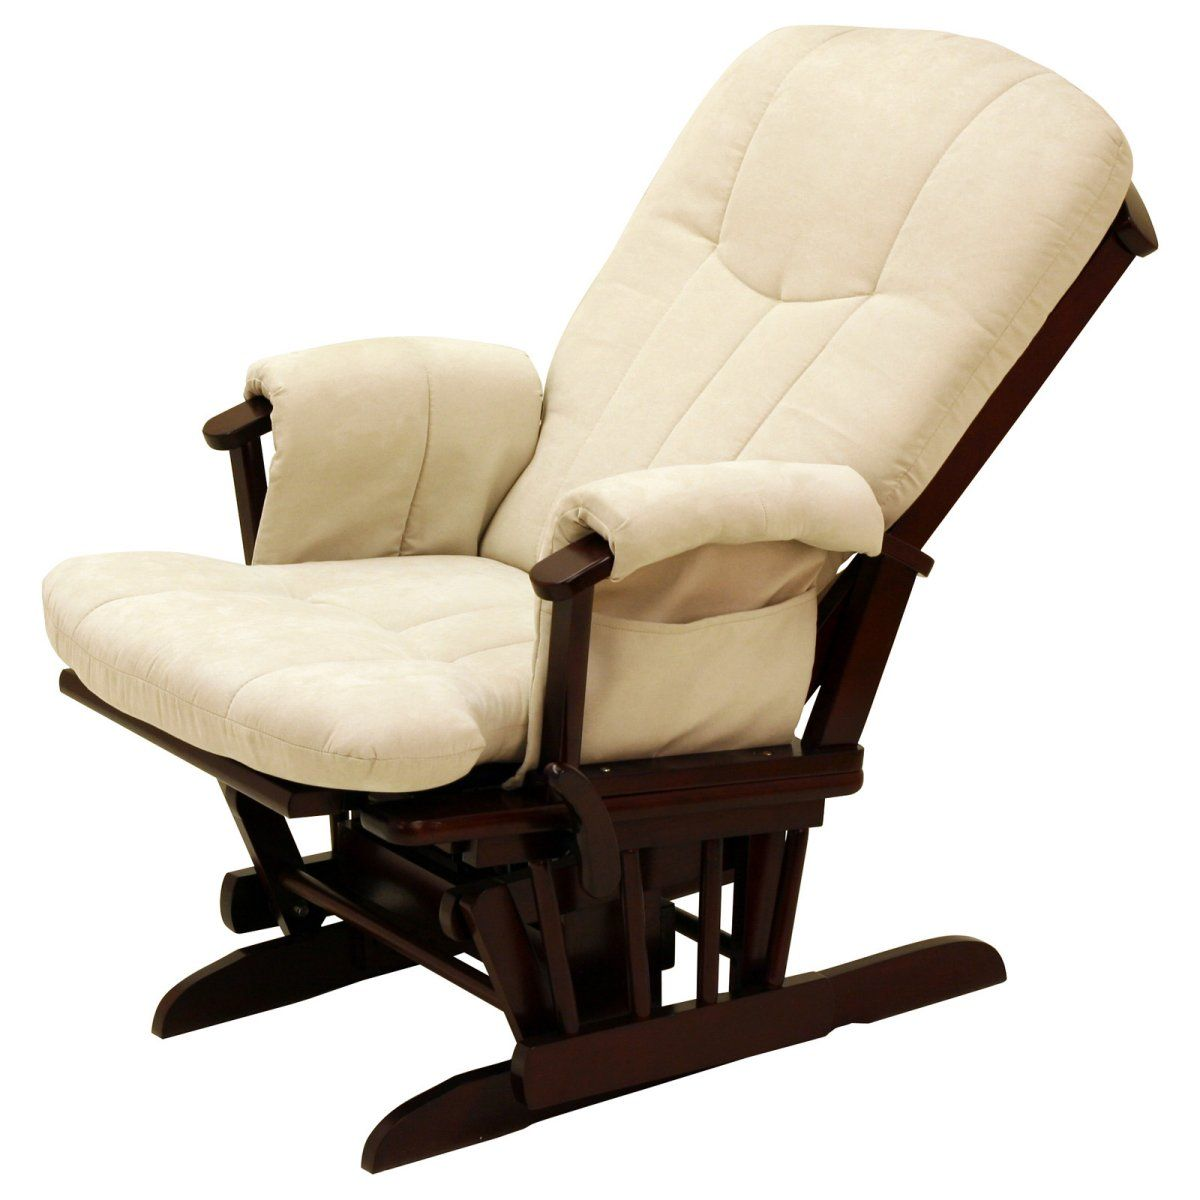 Storkcraft Deluxe Reclining Glider Rocker Cherry Beige Indoor Rocking Chairs At